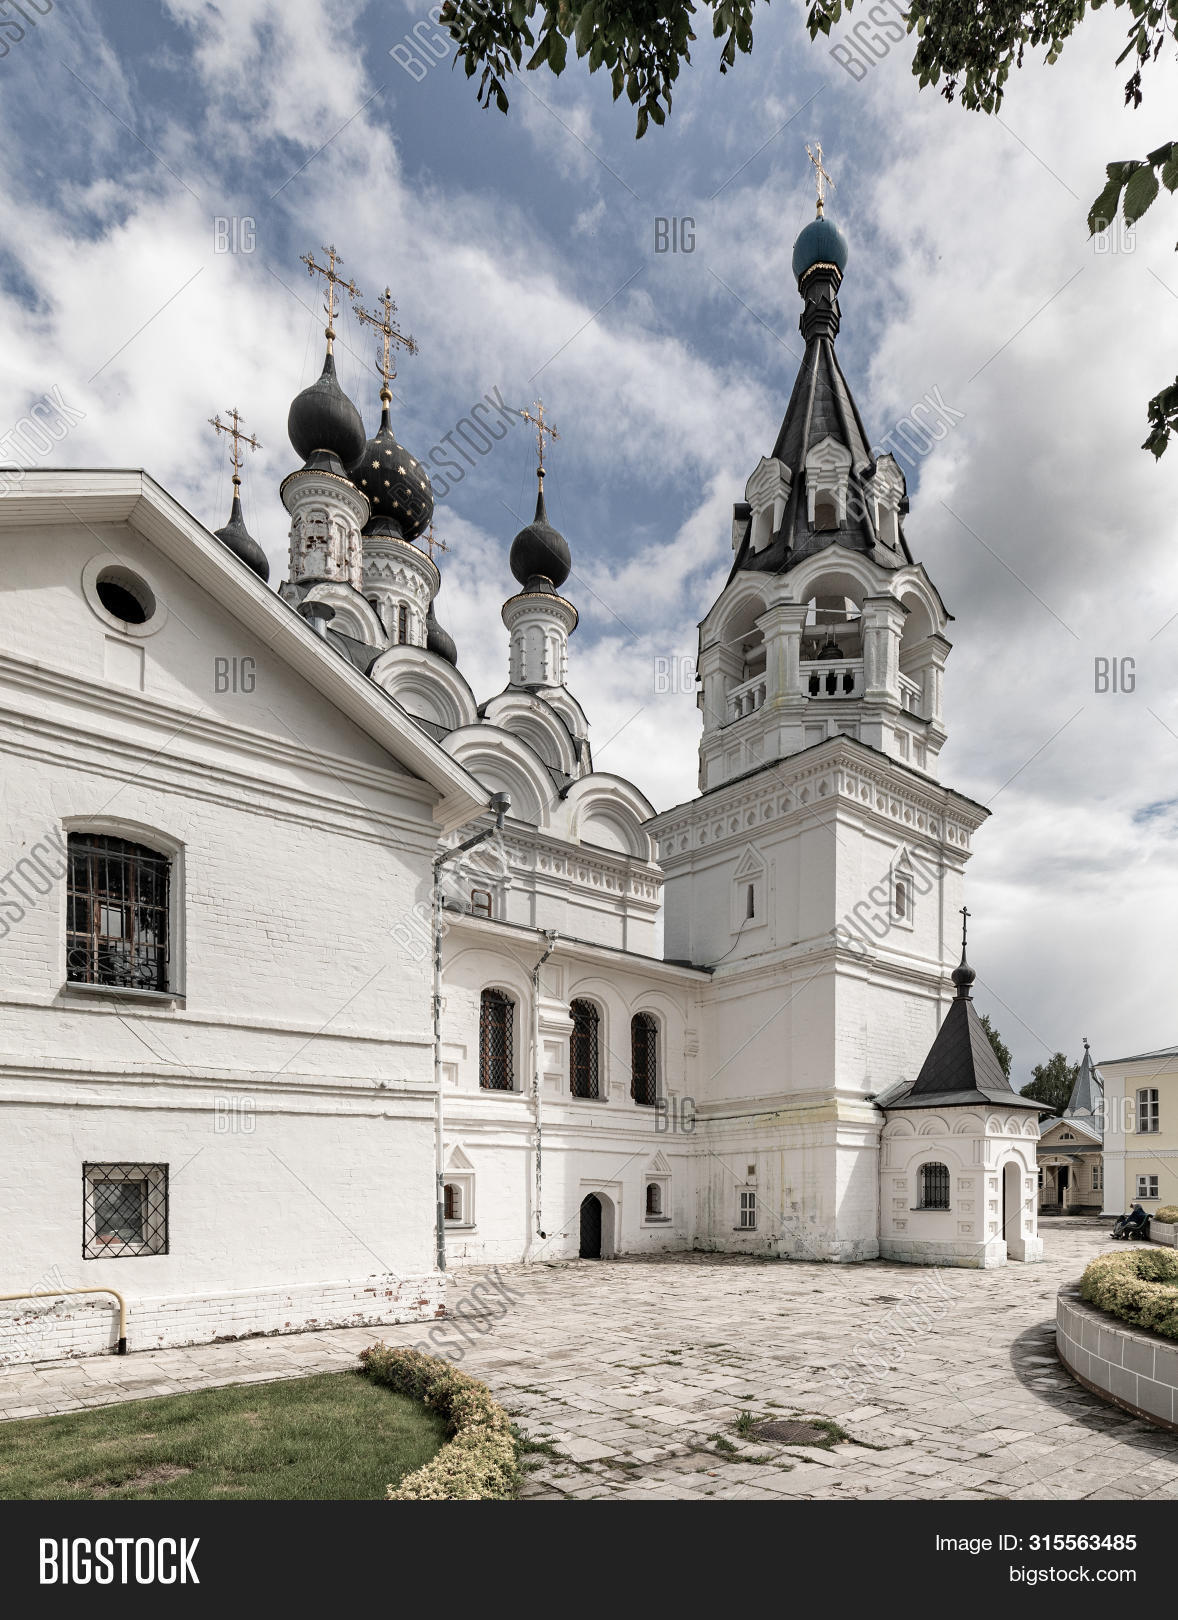 ancient,architecture,attraction,bell,blue,building,cathedral,christian,christianity,church,city,cross,culture,dome,exterior,faith,famous,historic,historical,history,landmark,monastery,monument,murom,old,orthodox,orthodoxy,outdoor,religion,religious,russia,saint,style,summer,temple,territory,tourism,tourist,tower,town,traditional,travel,white